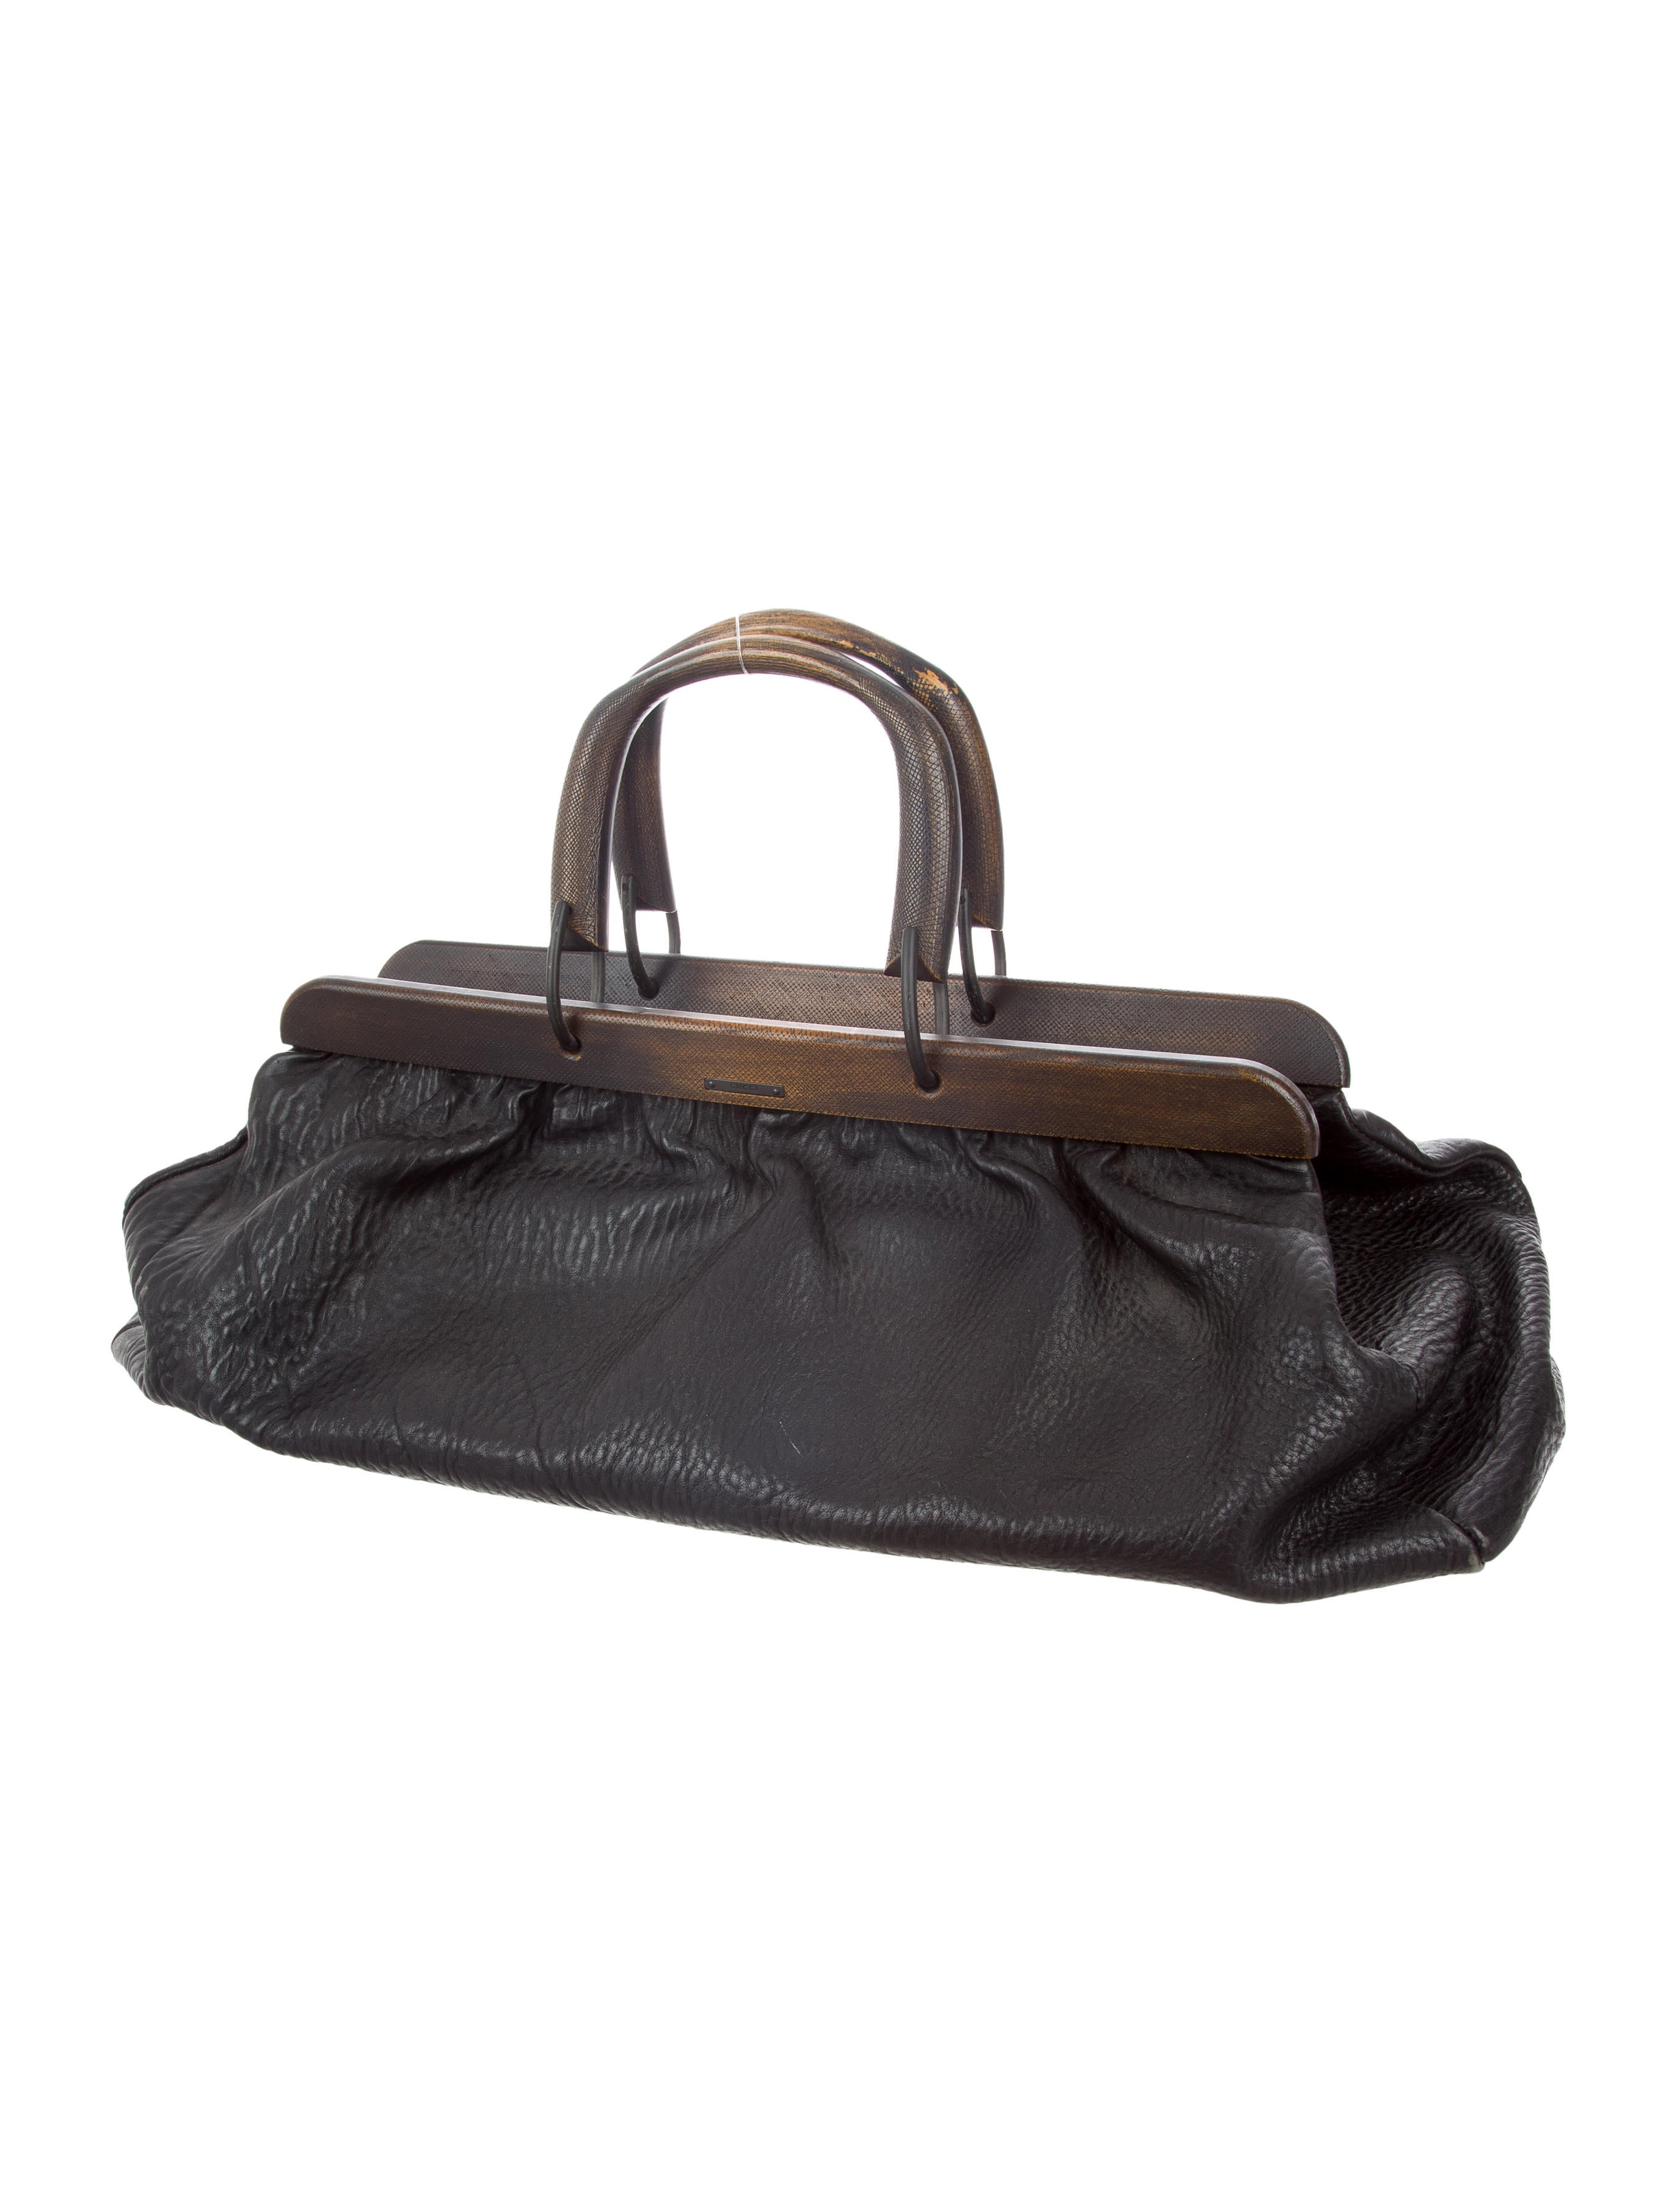 86bbba0b5f09 Gucci Bag With Wooden Handles | Stanford Center for Opportunity ...